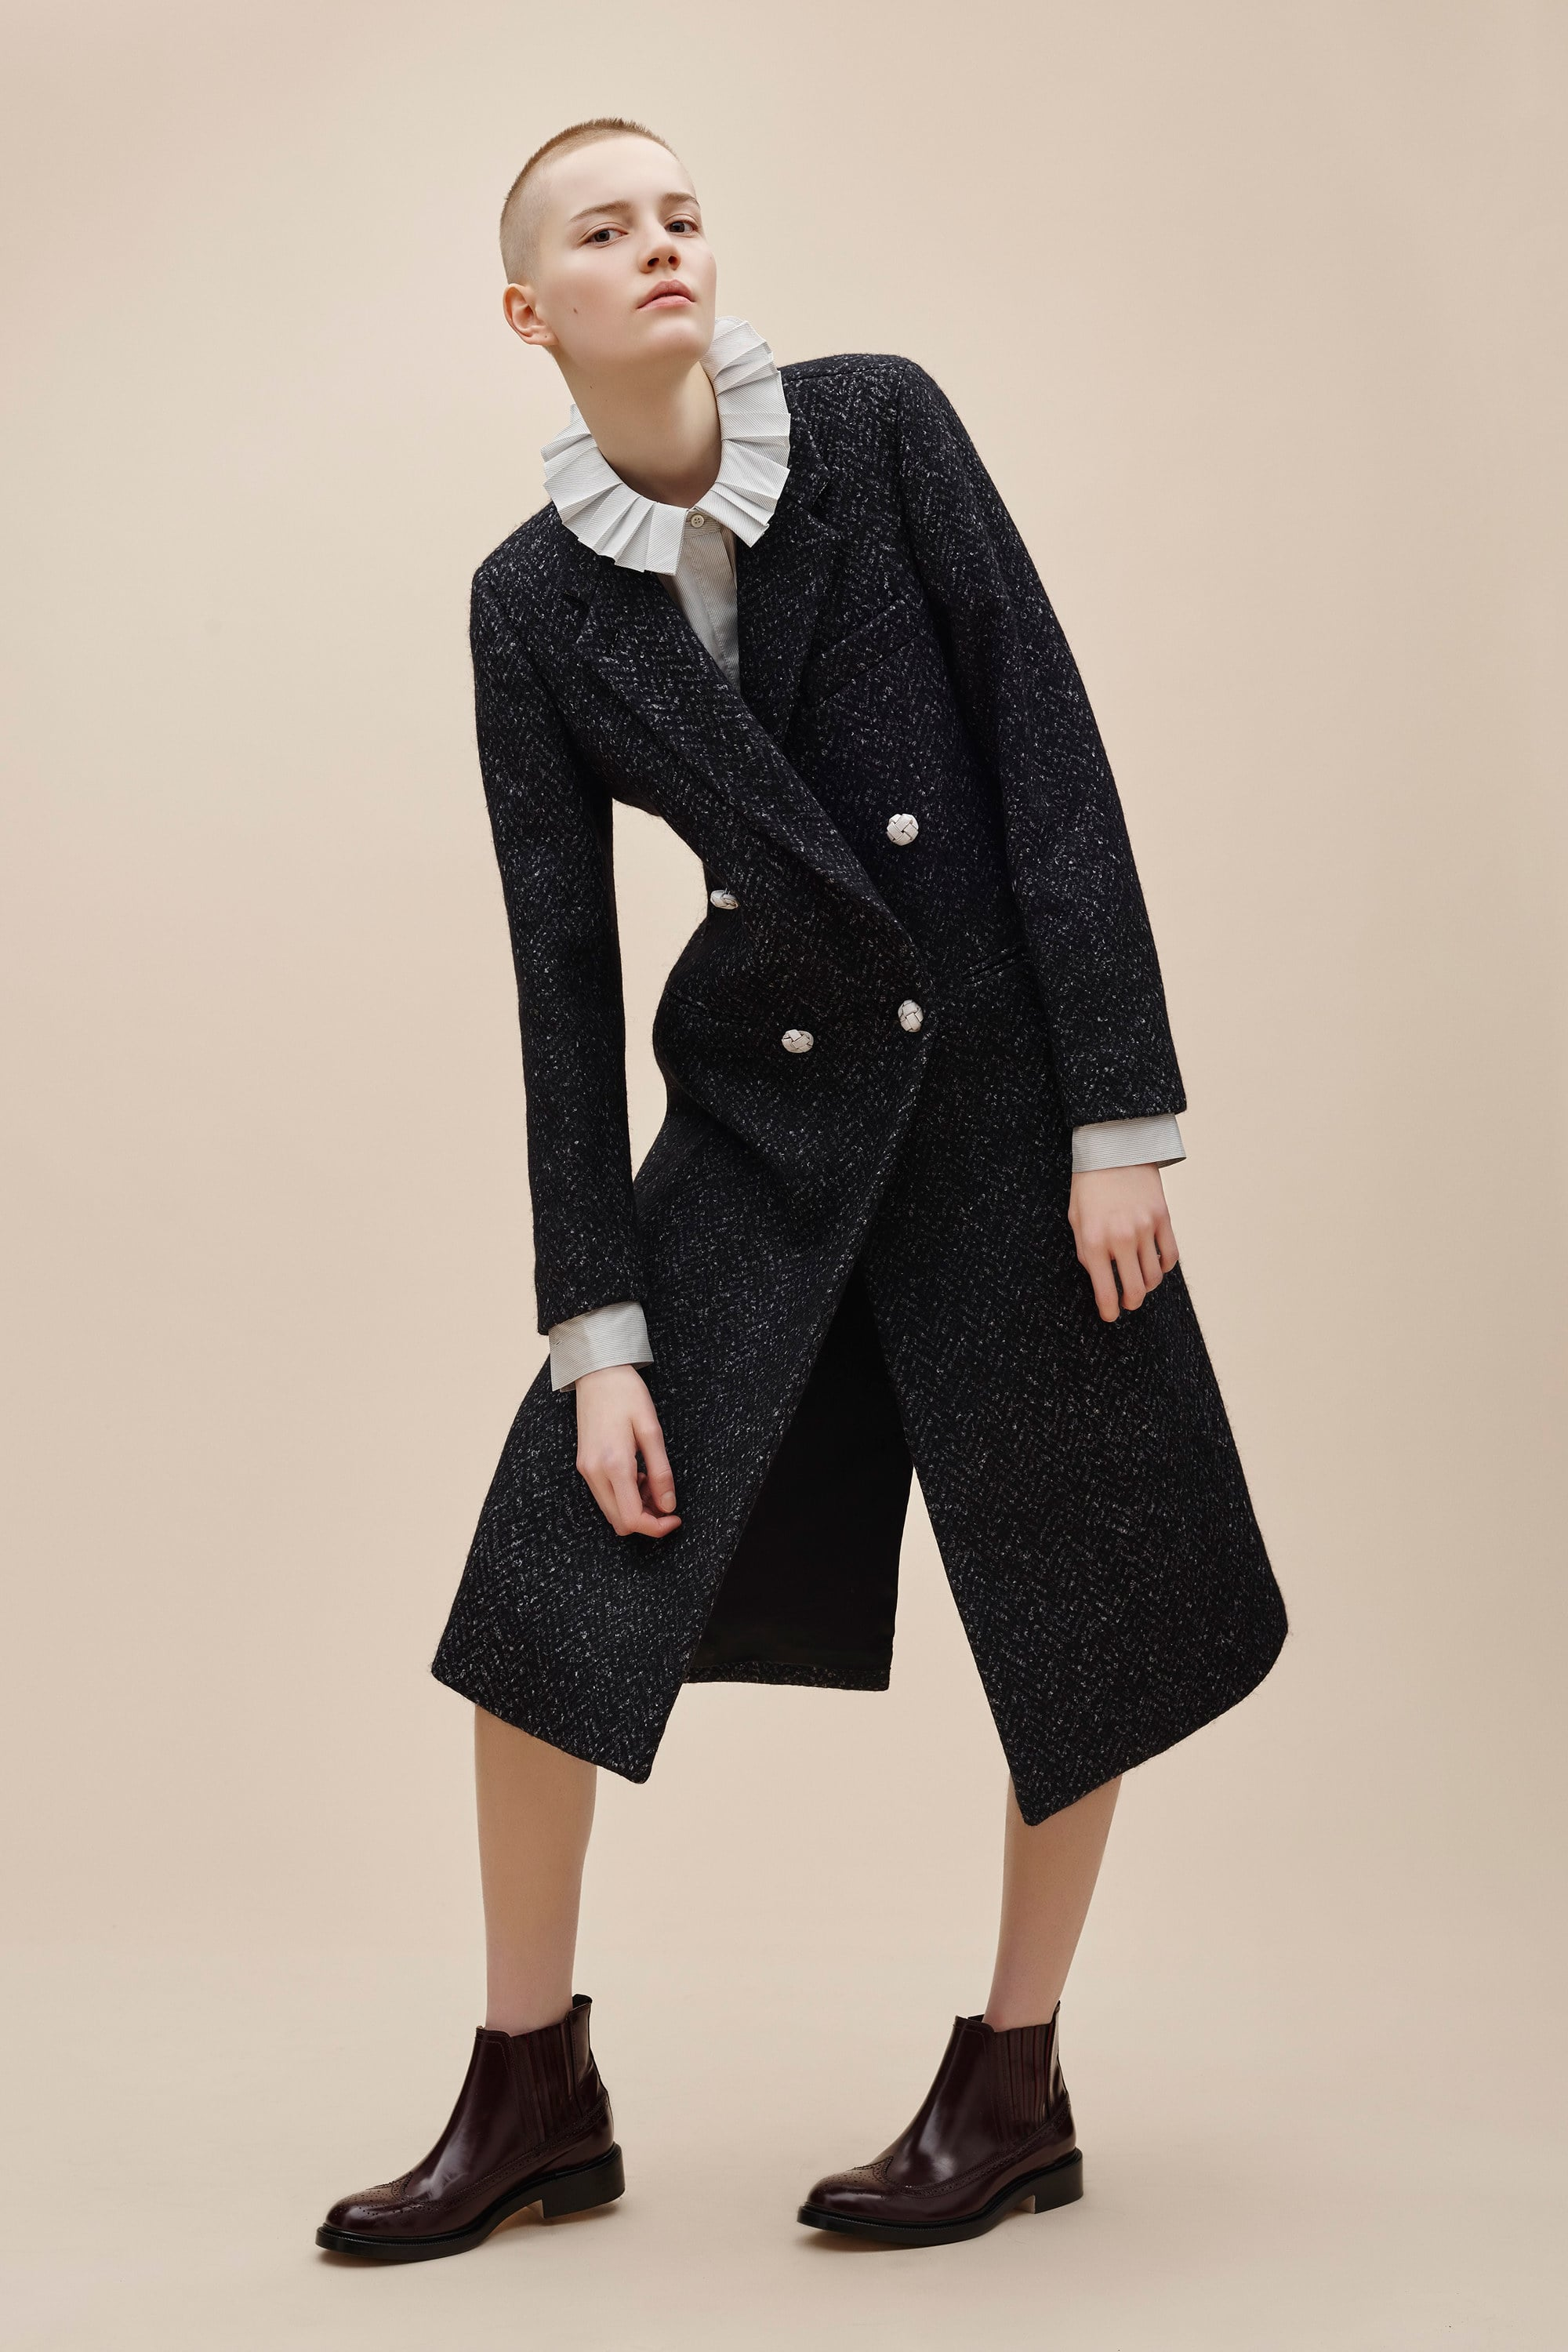 joseph-pre-fall-2016-lookbook-09.jpg